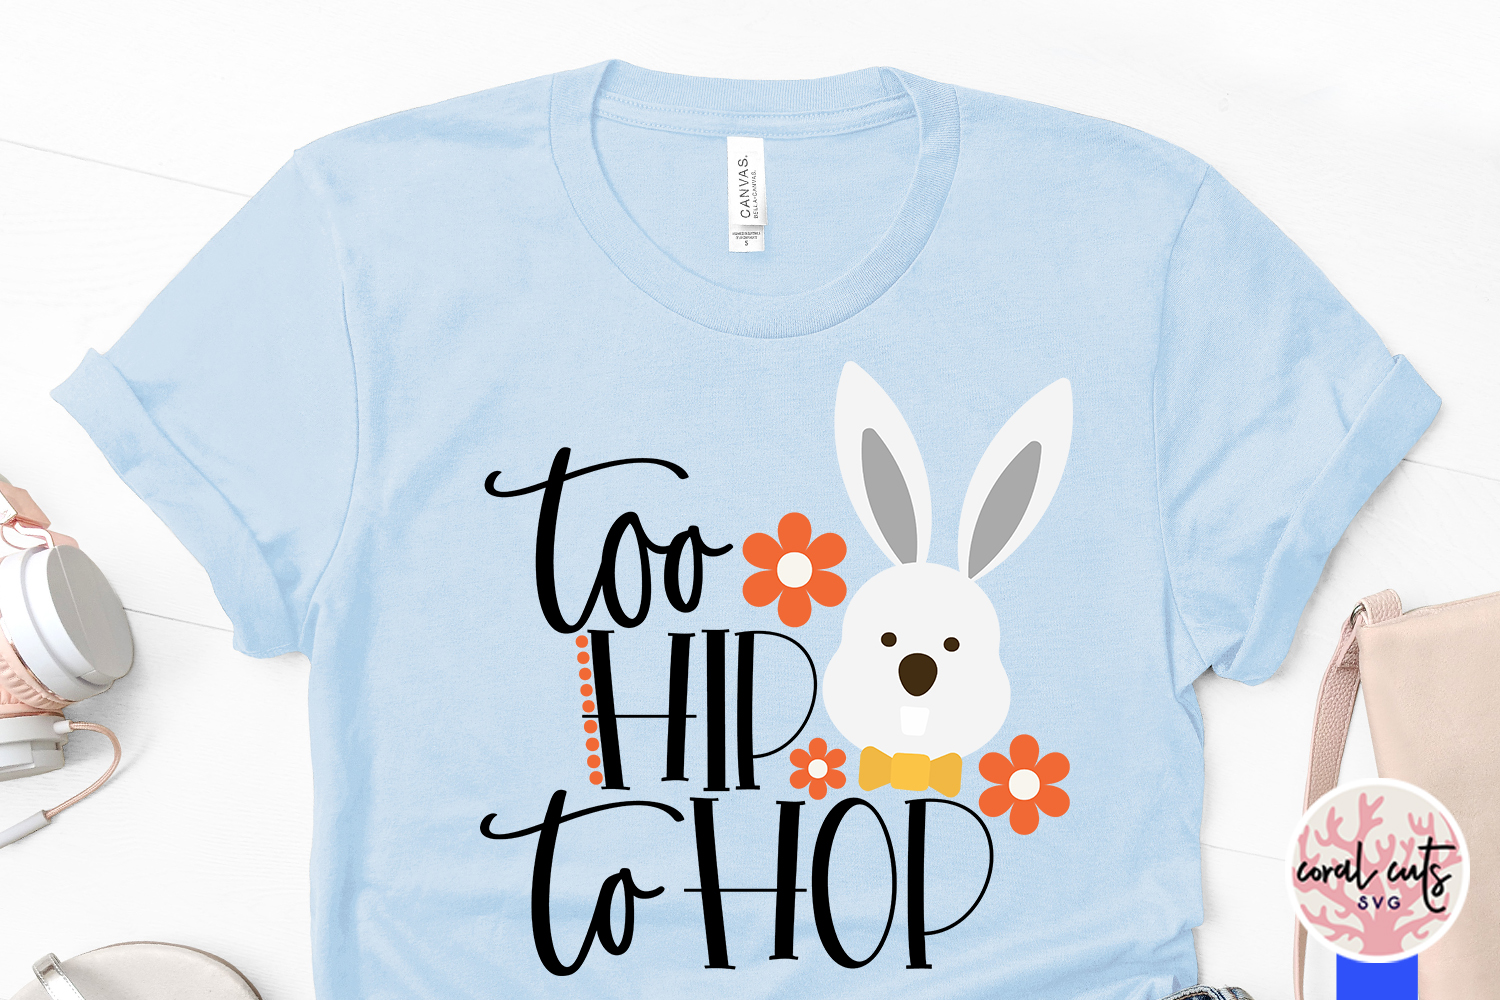 Too hip to hop - Easter SVG EPS DXF PNG Cutting File example image 3